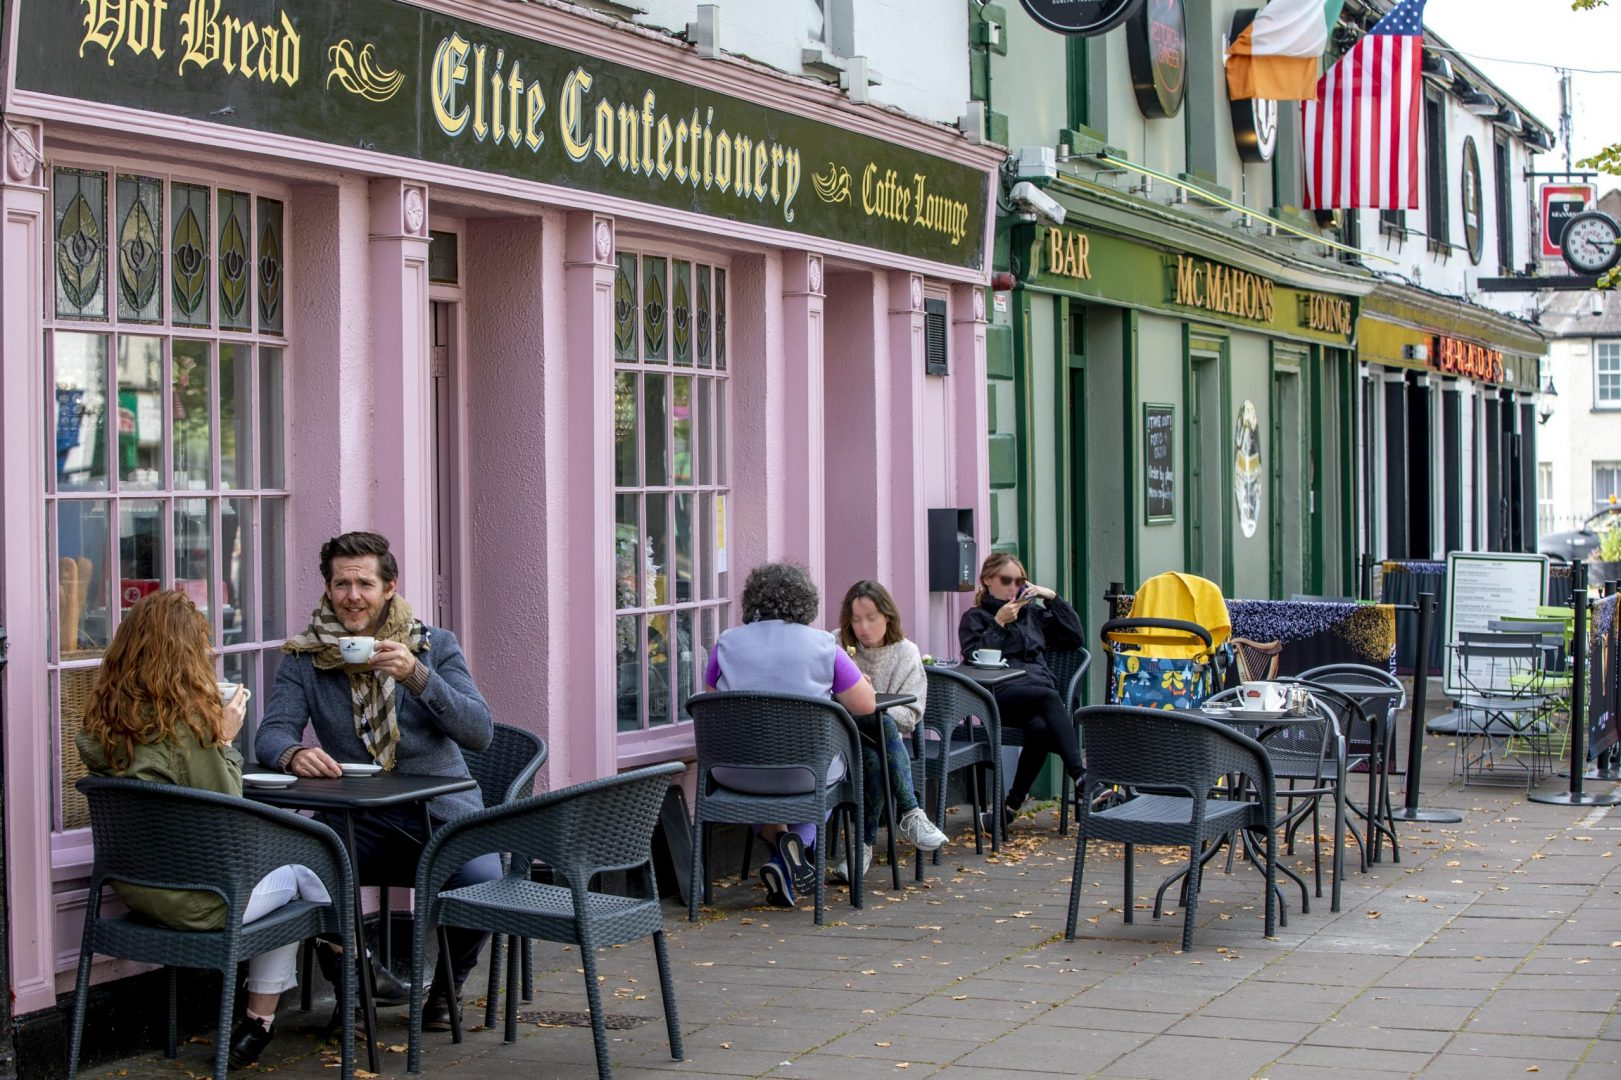 Dining outdoors in Maynooth